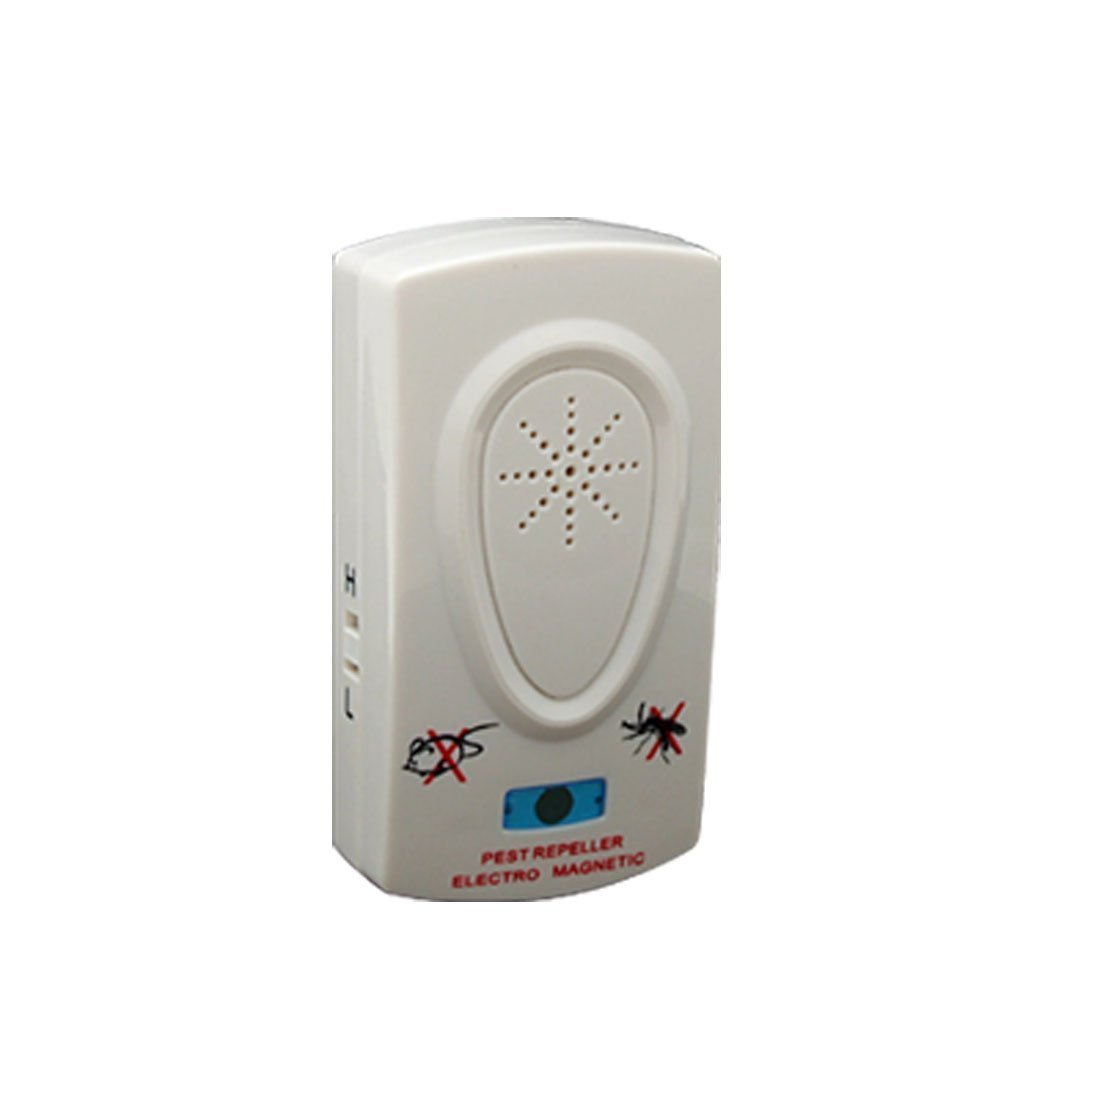 ToJoy Ultrasonic Electronic Pest/Mosquito/Insect/Rodent/Rat Repeller